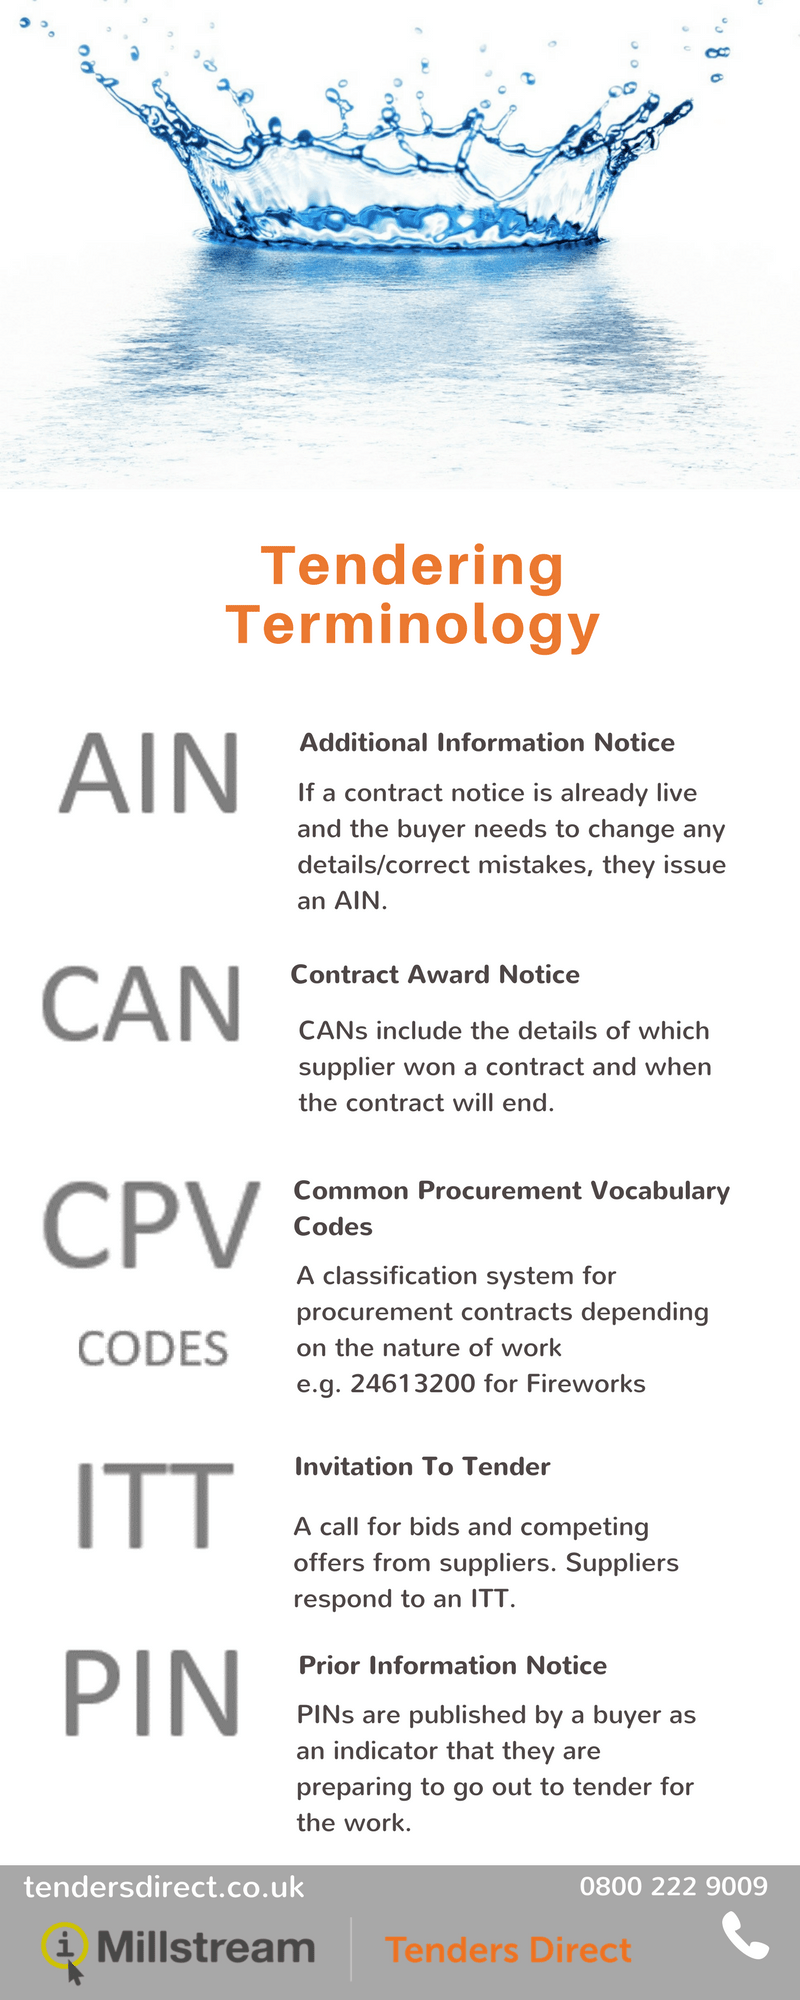 Infographic of the top 5 procurement acronyms